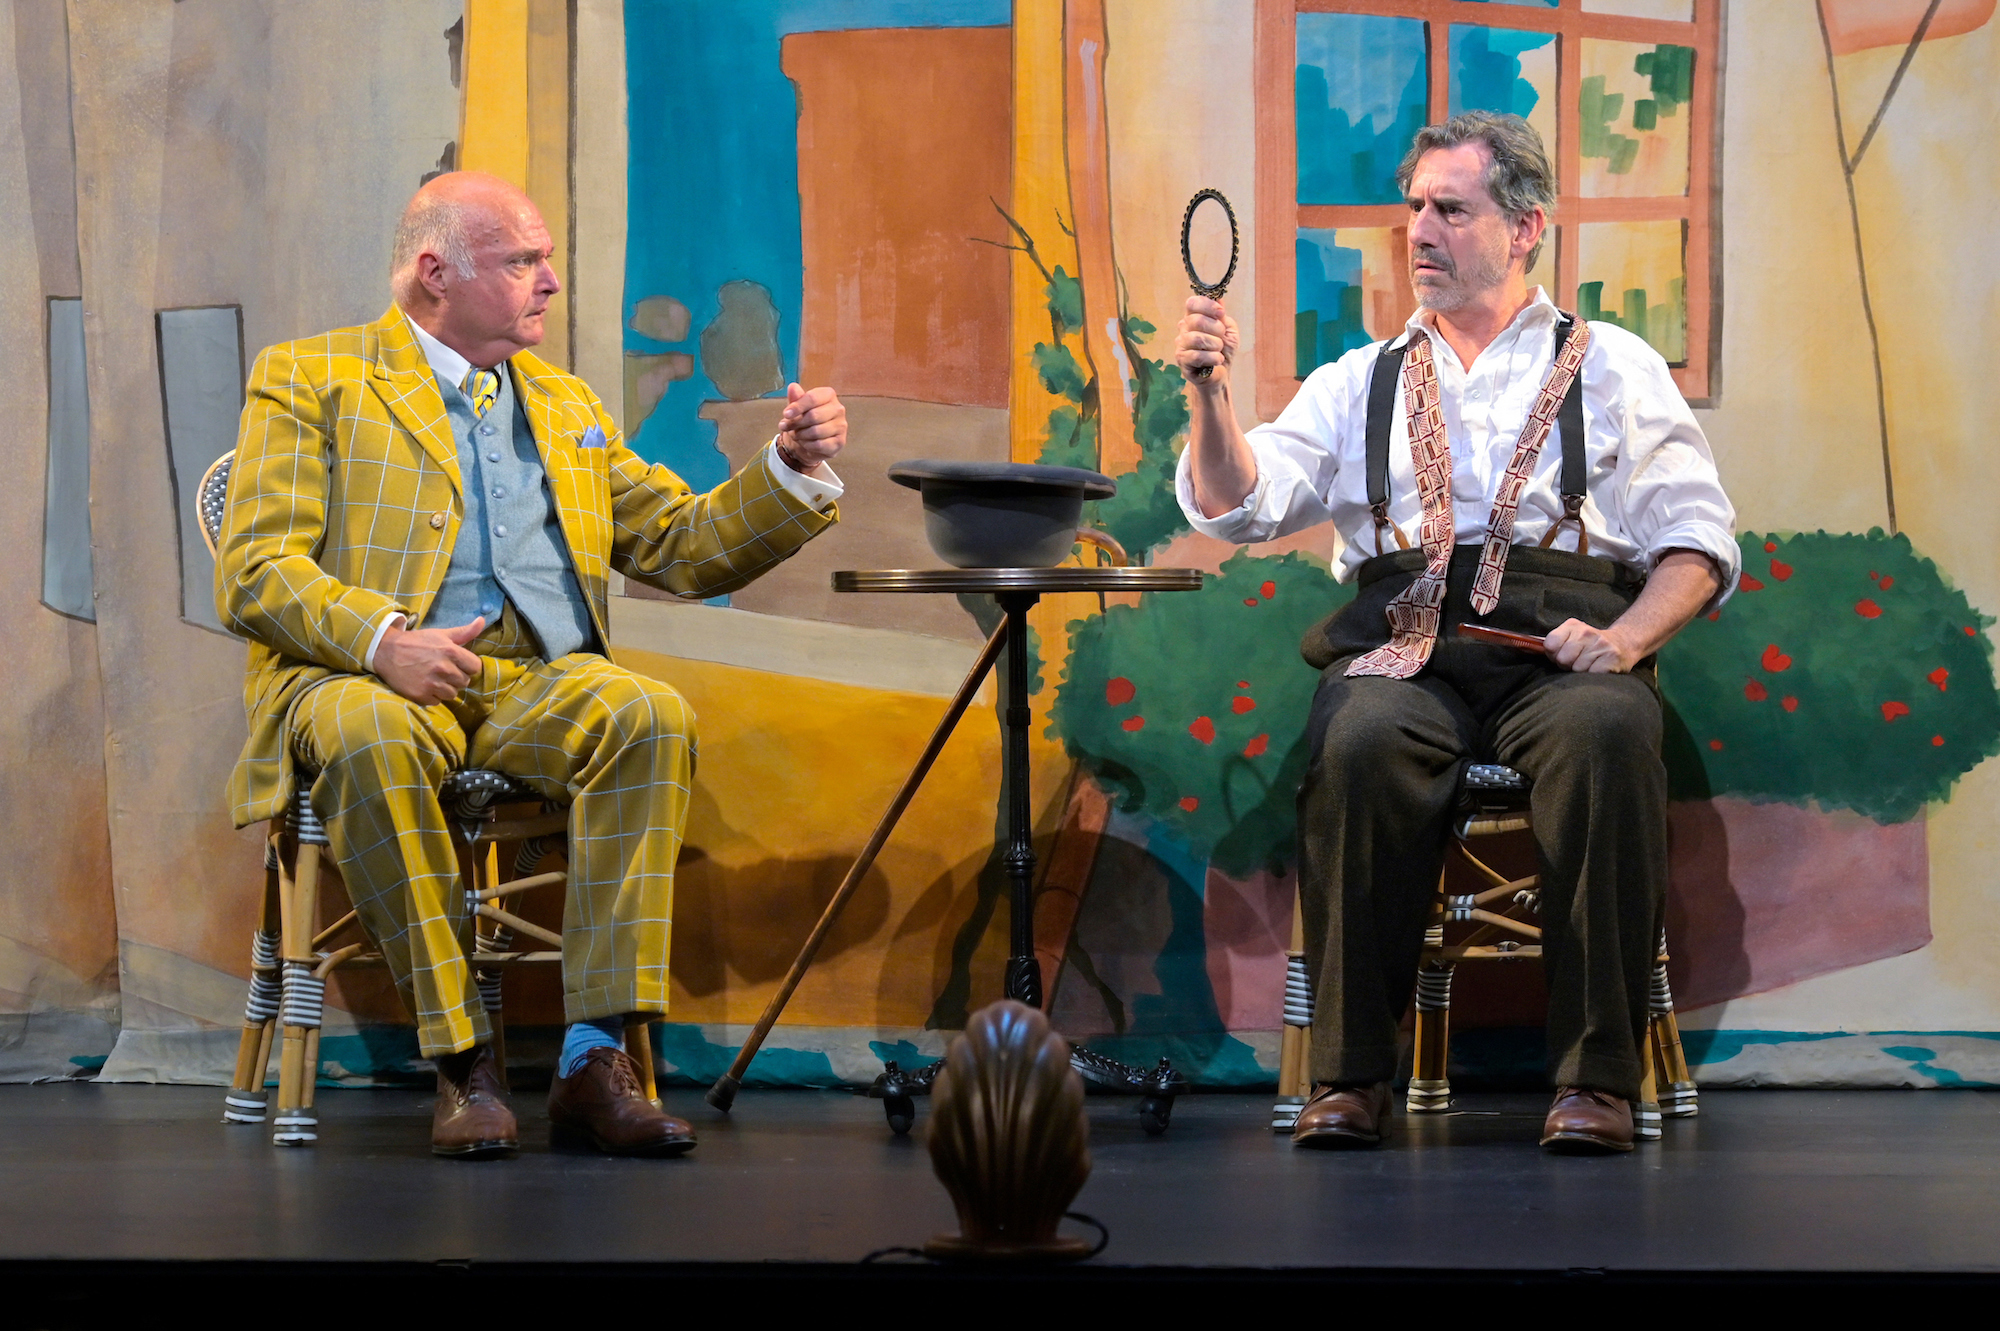 Matt DeCaro as Gene and David Breitbarth as Berenger in 'Rhinoceros' at A.C.T.